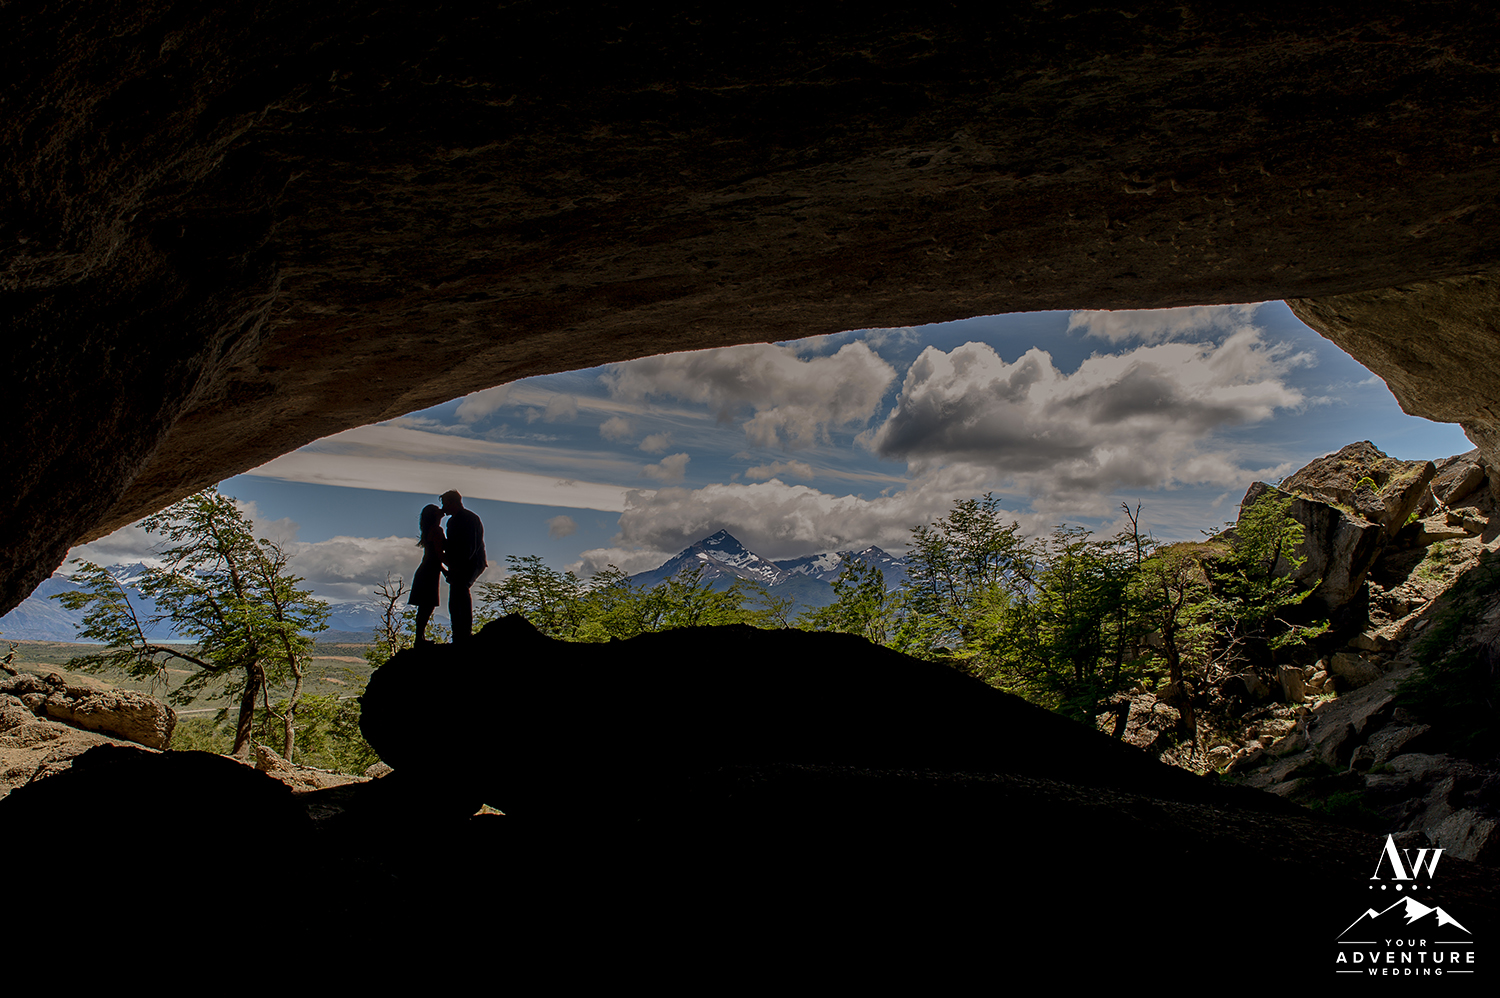 Cave Adventure Wedding - Your Adventure Wedding